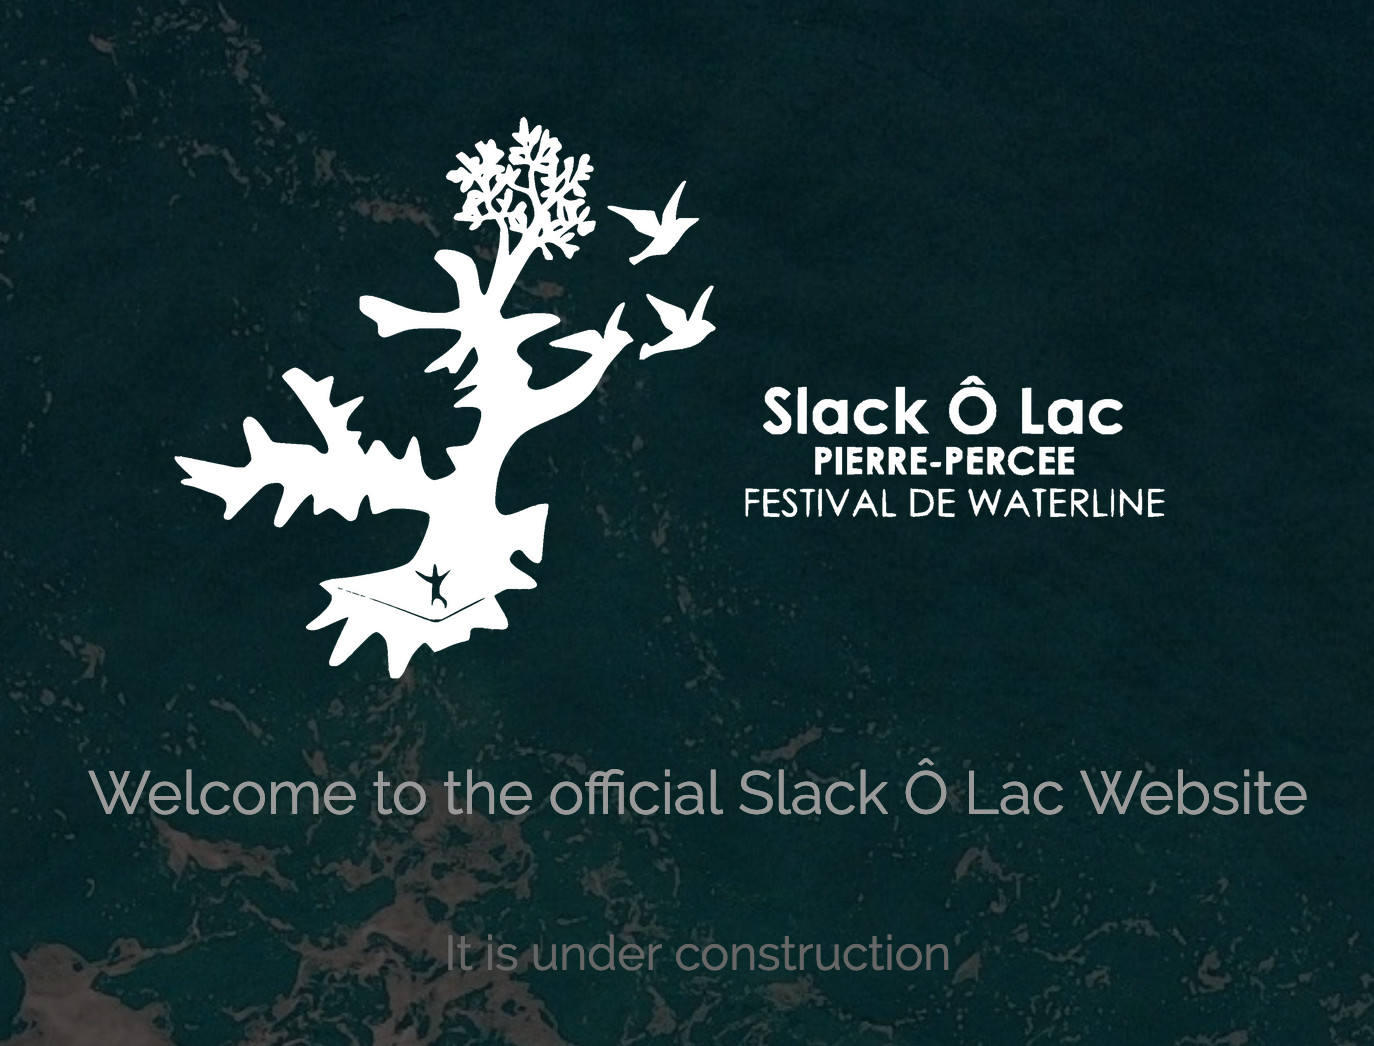 Festival de waterline slackolac